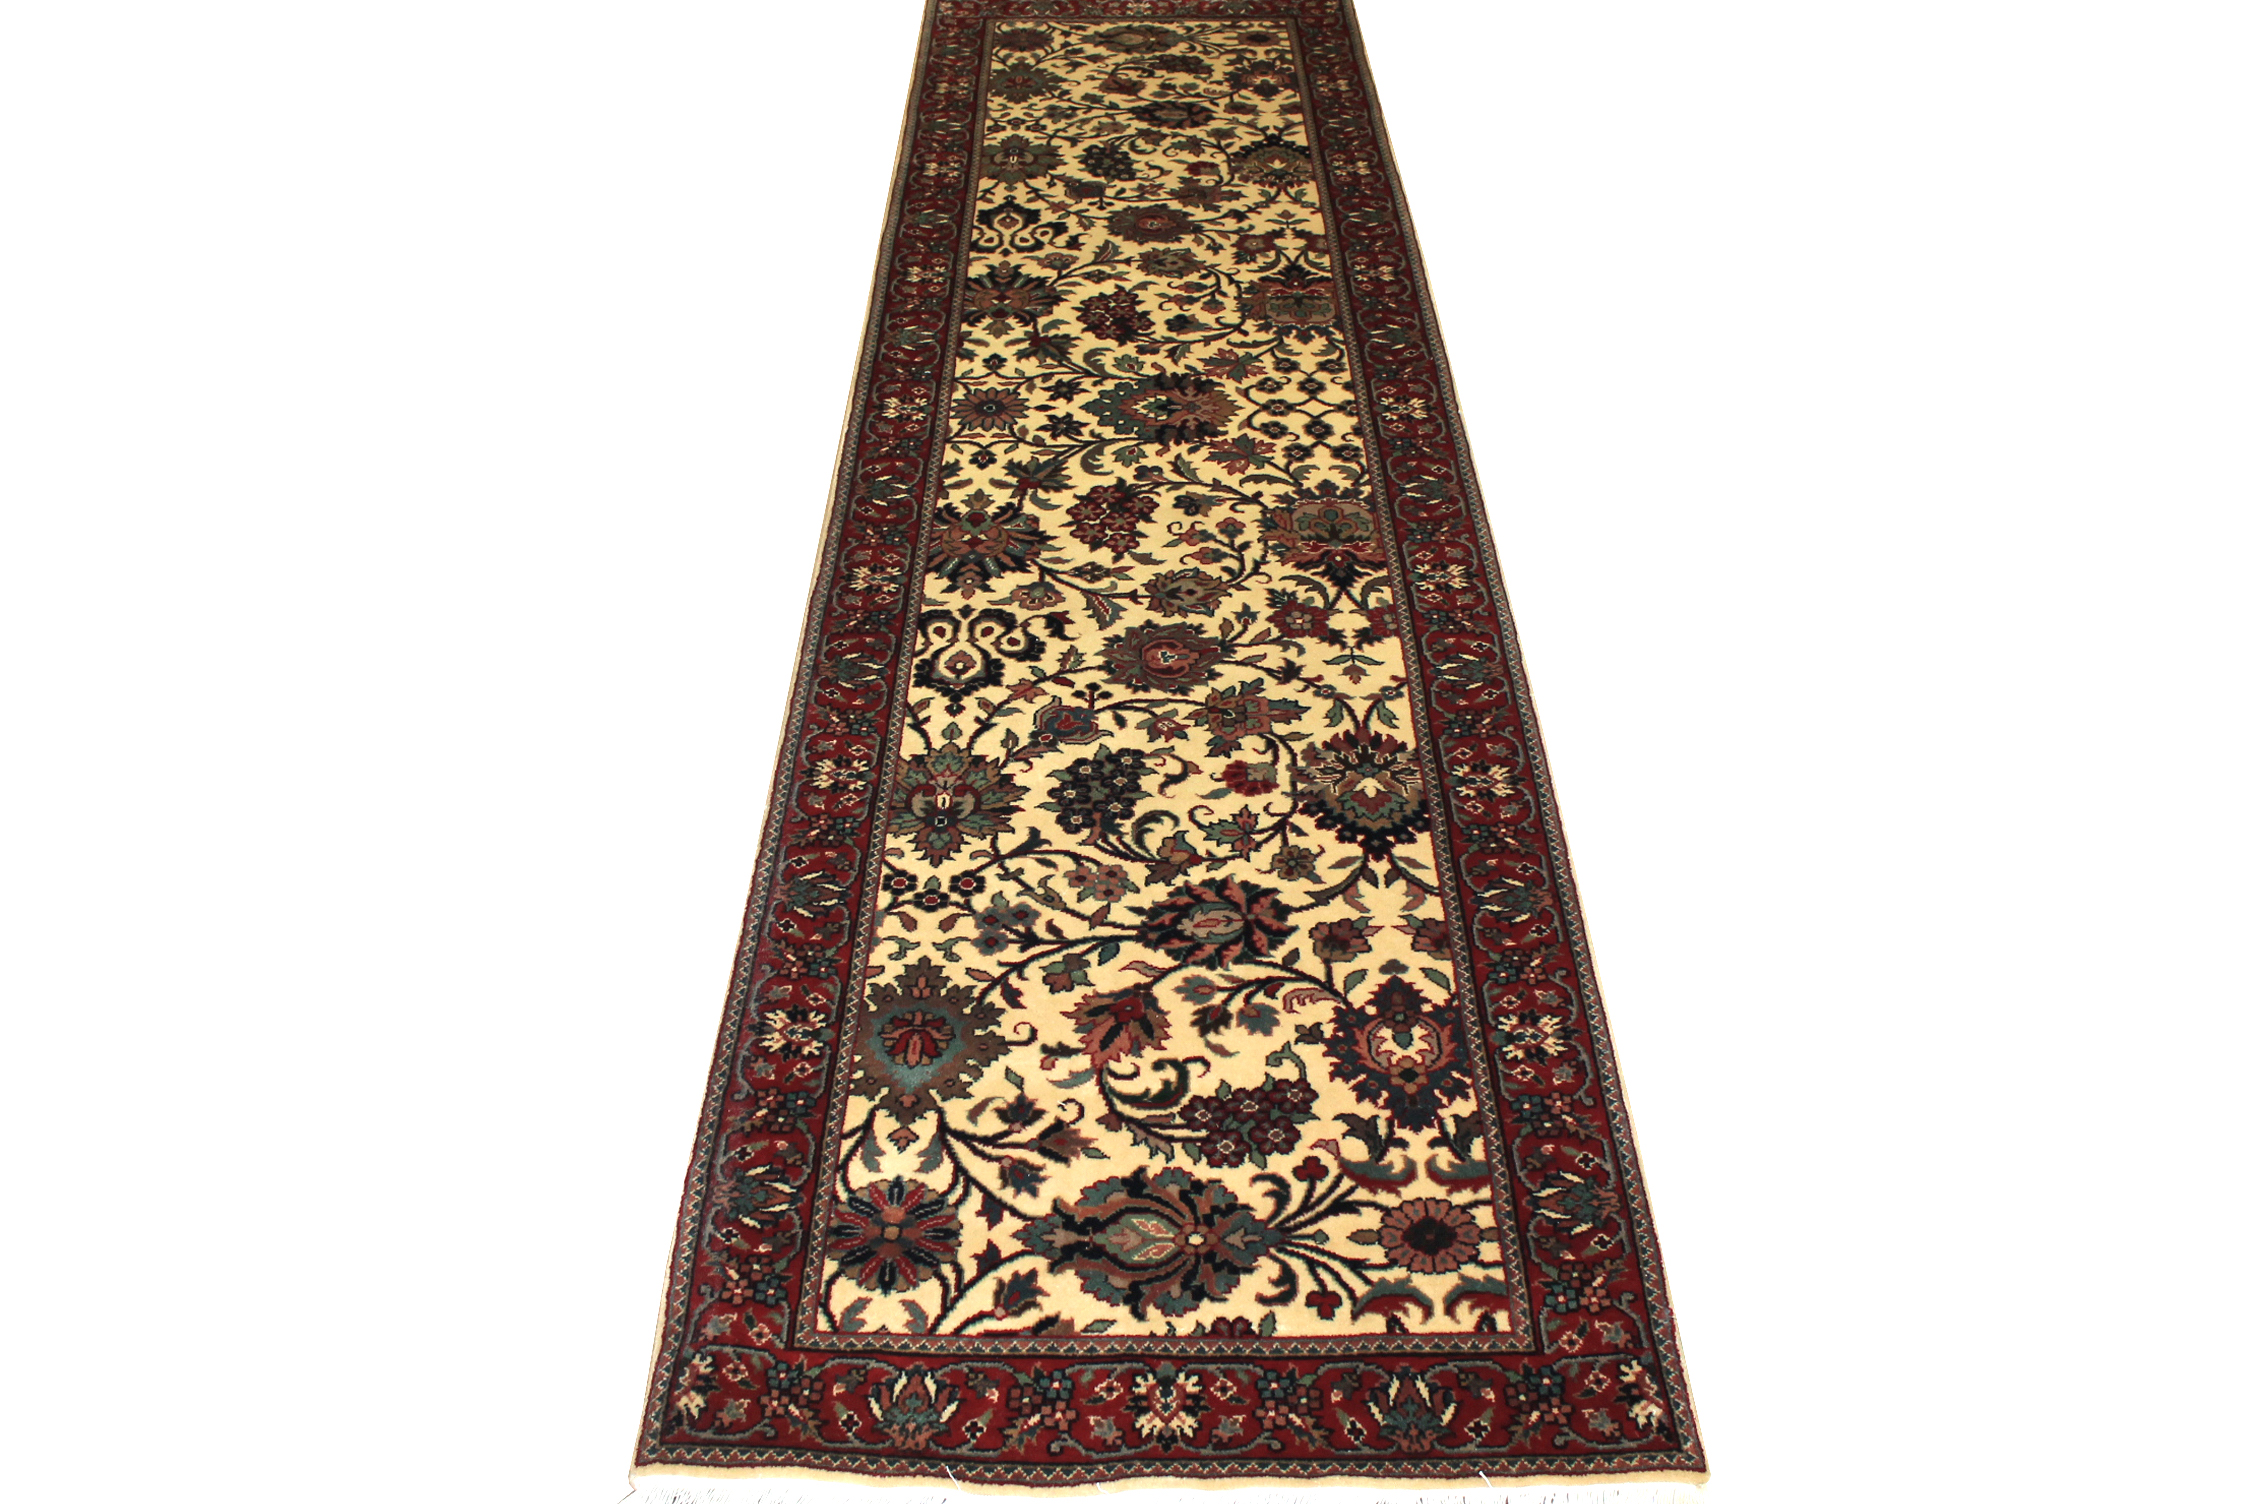 10 ft. Runner Traditional Hand Knotted Wool Area Rug - MR10883